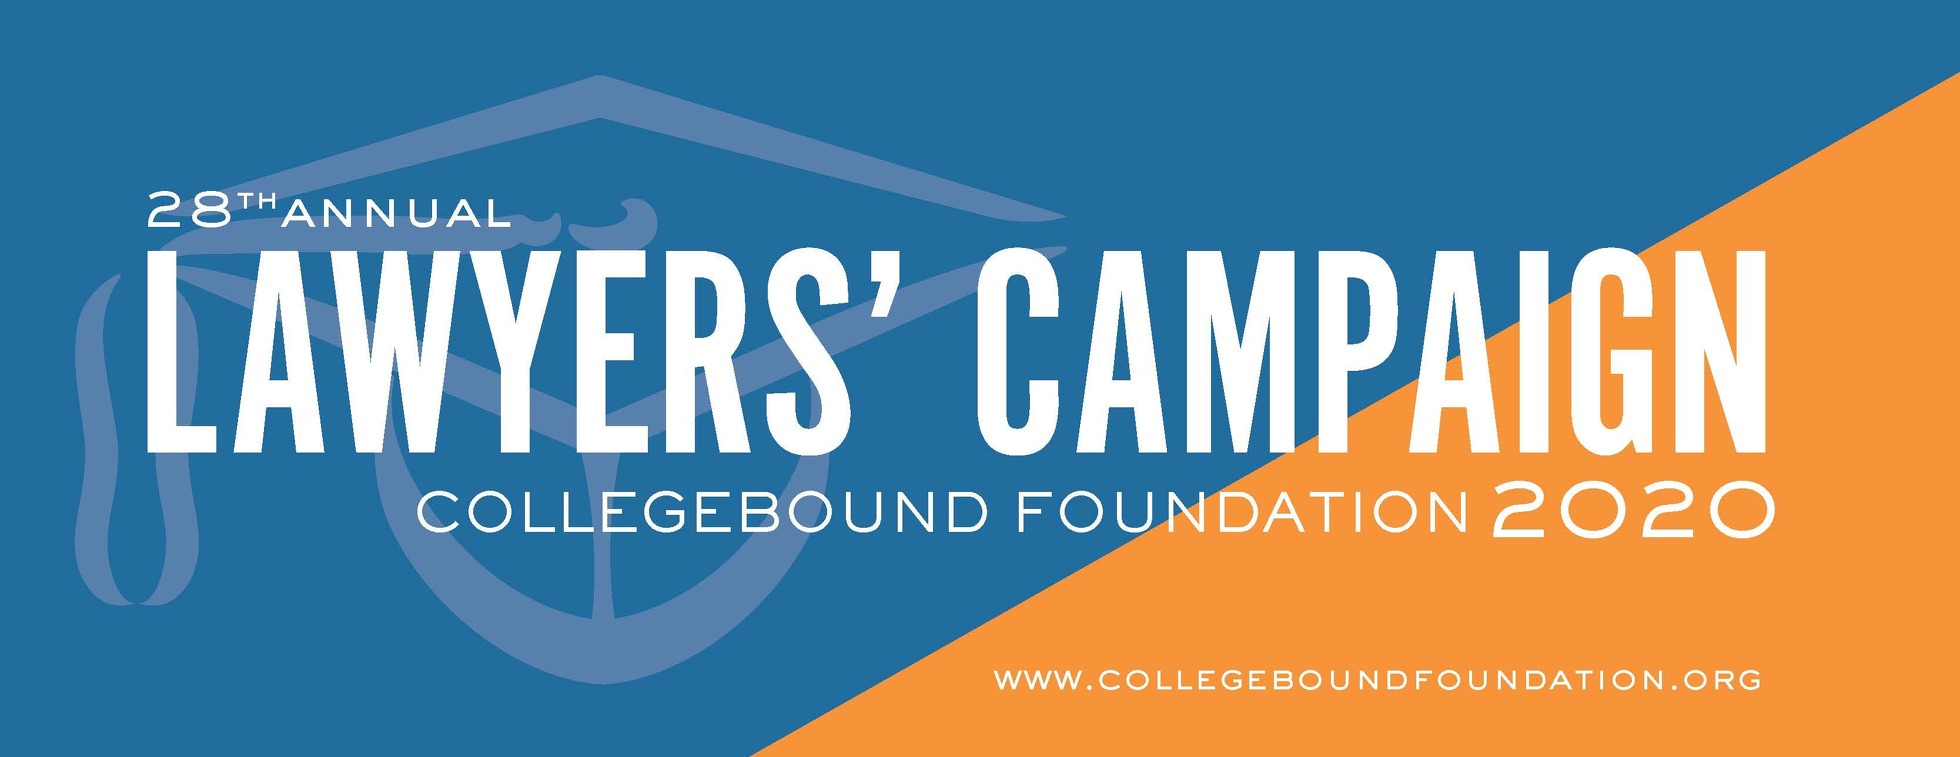 28th annual Lawyers' Campaign for CollegeBound